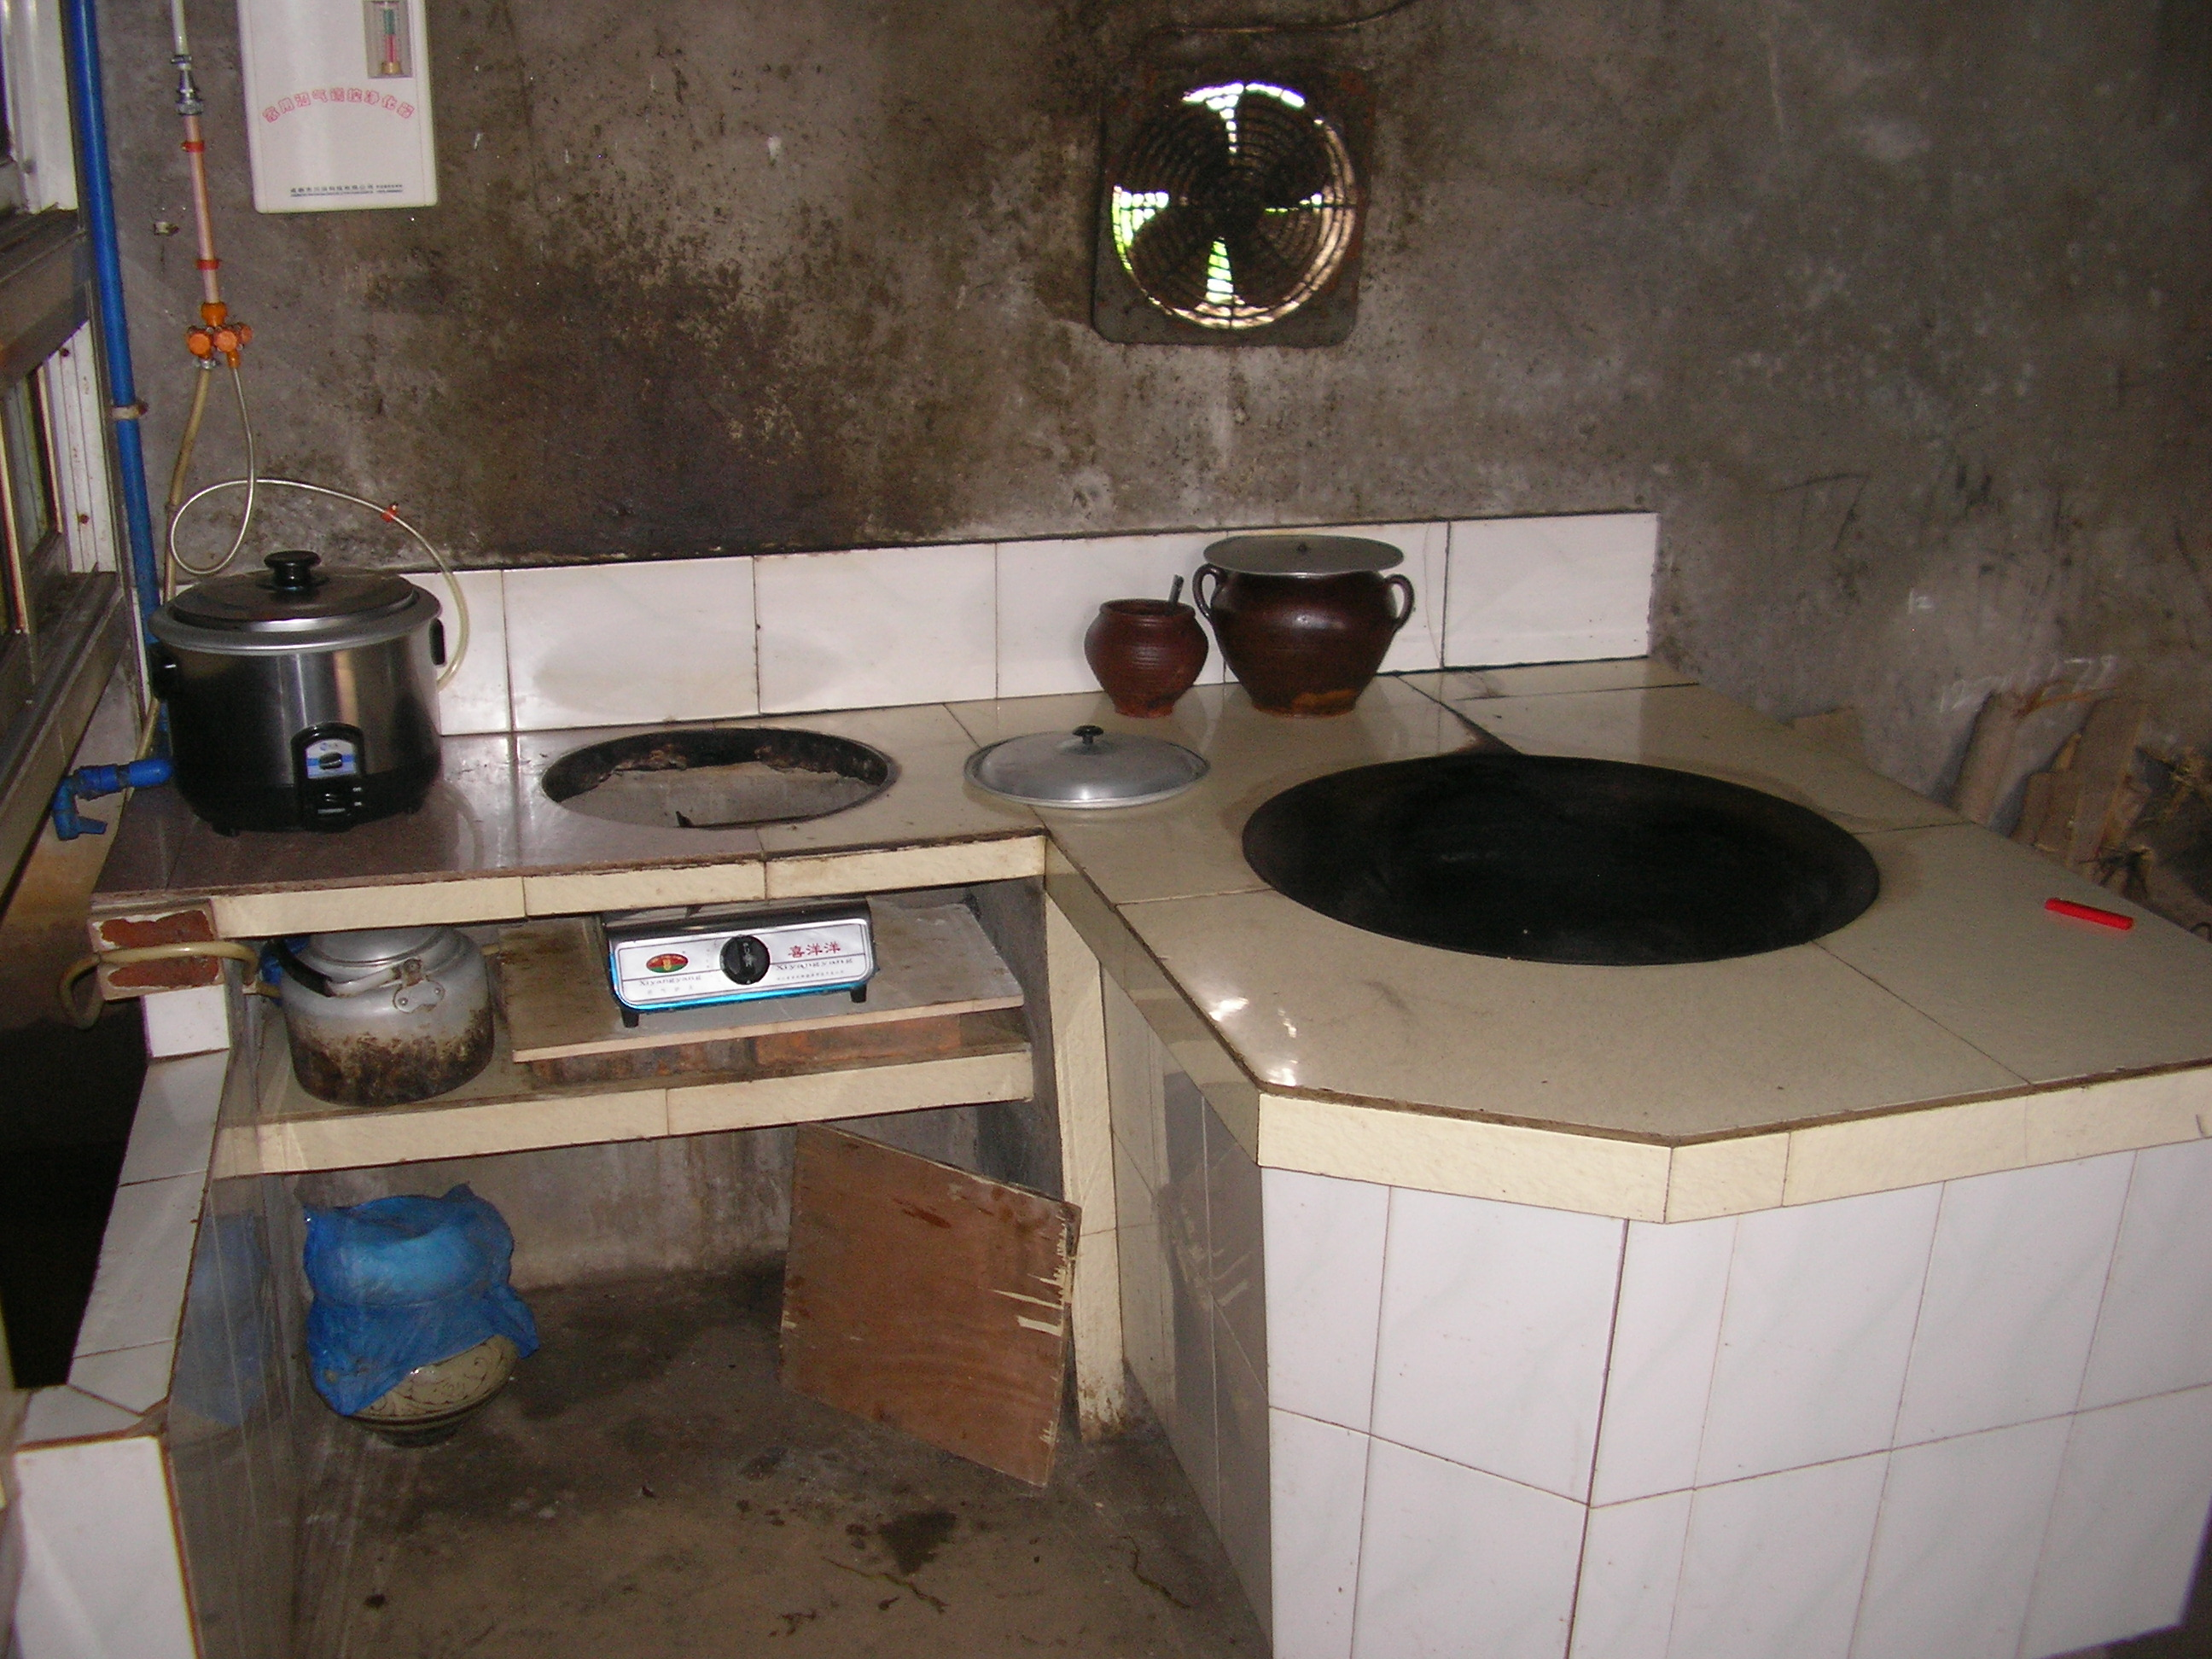 Kitchen using biogas. Photo: John Hawdon.